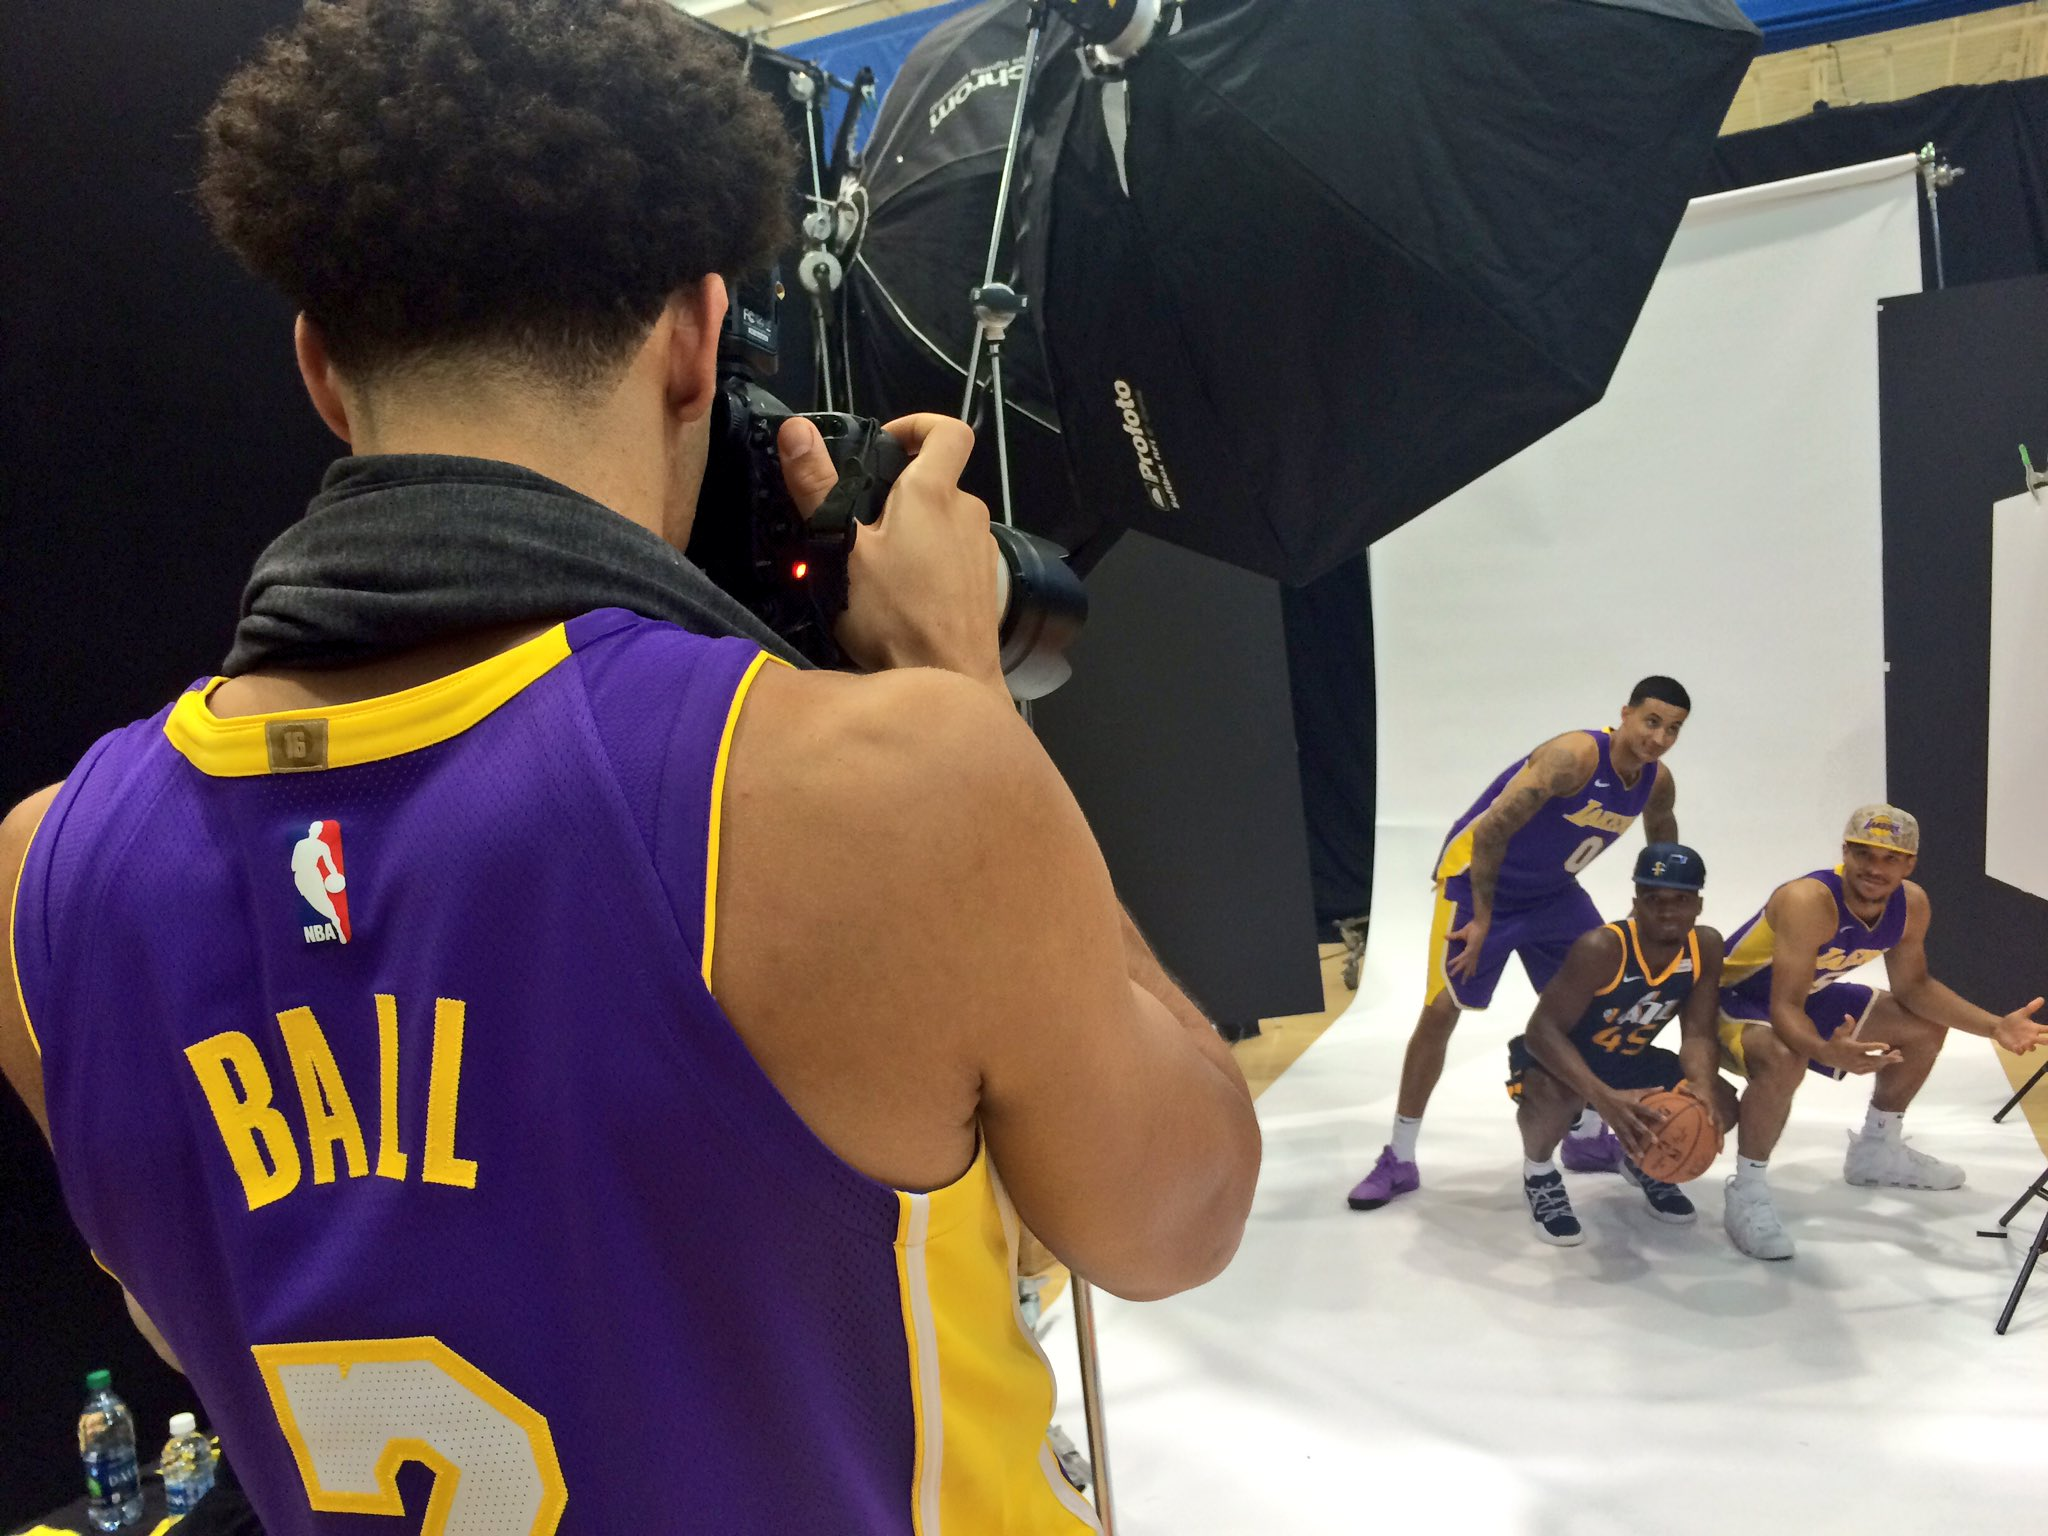 .@Lakers rook @ZO2_: @PaniniAmerica photographer. #WhoDoYouCollect #PaniniNBARookie https://t.co/ren84MWlHL